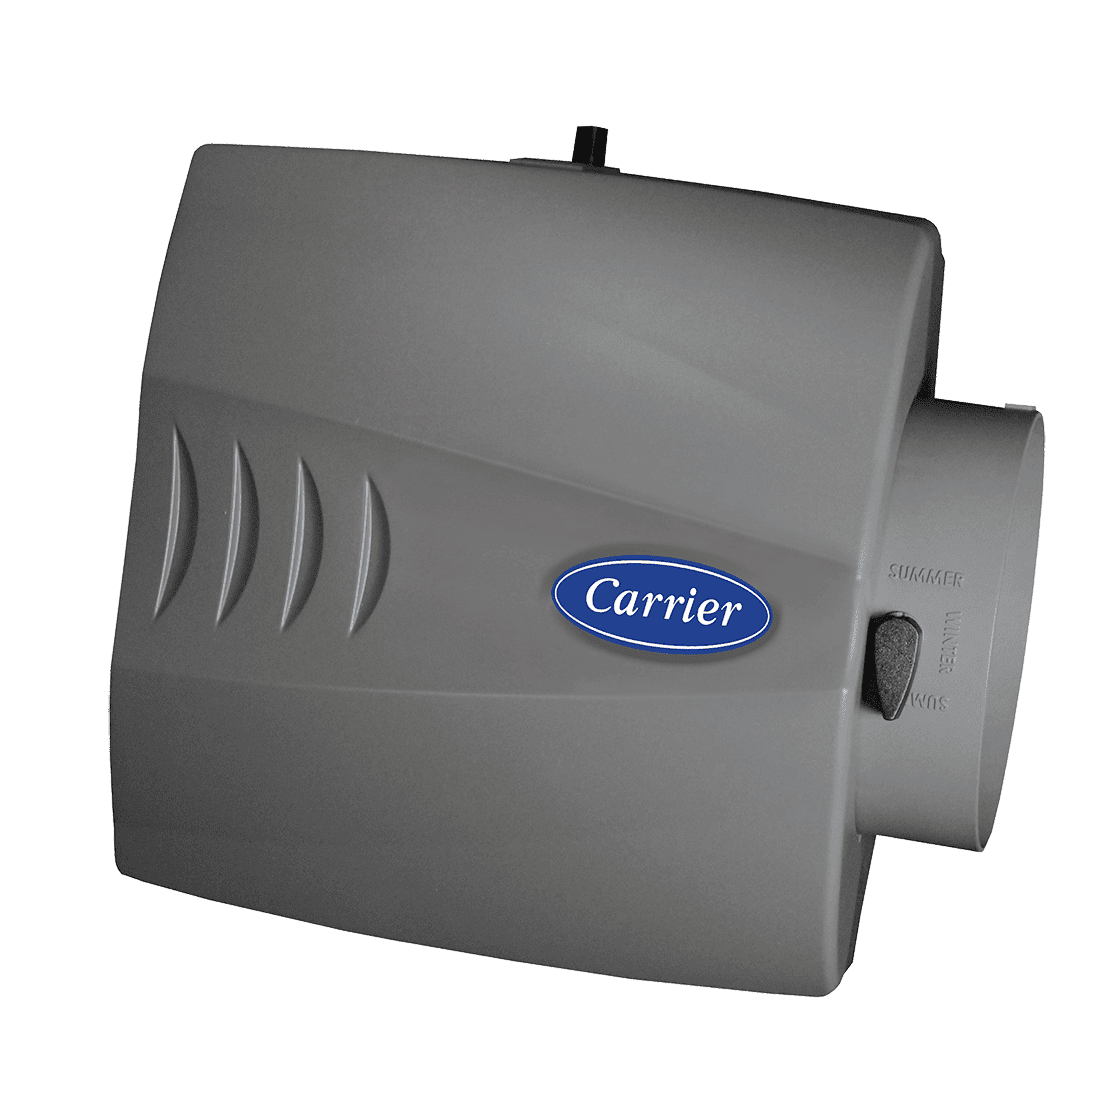 PERFORMANCE™ SMALL BYPASS HUMIDIFIER Model: HUMCRSBP